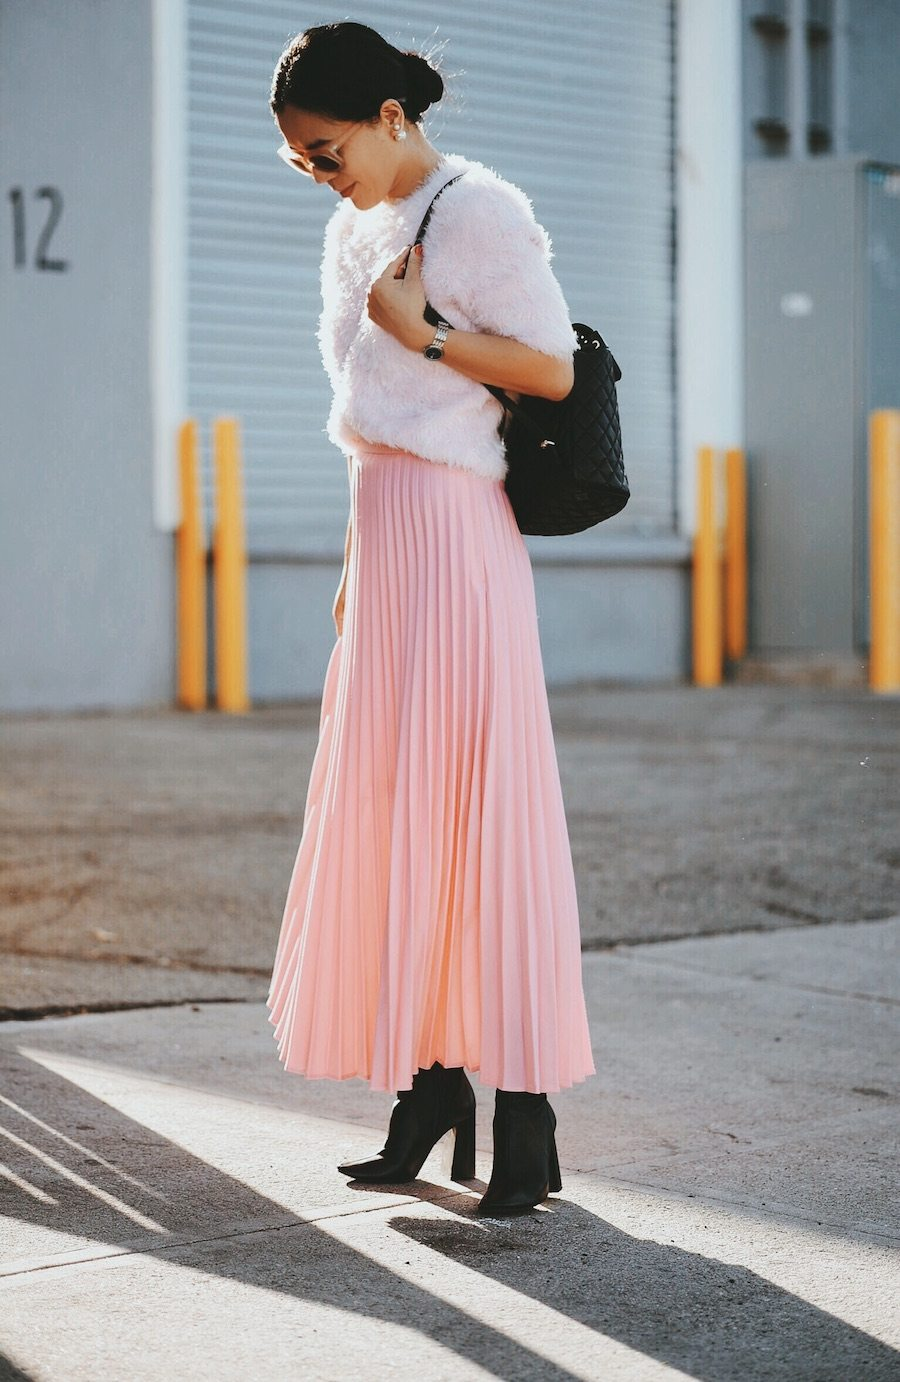 In Pink Pink Pleated Skirt Amp Pink Sweater Hallie Daily